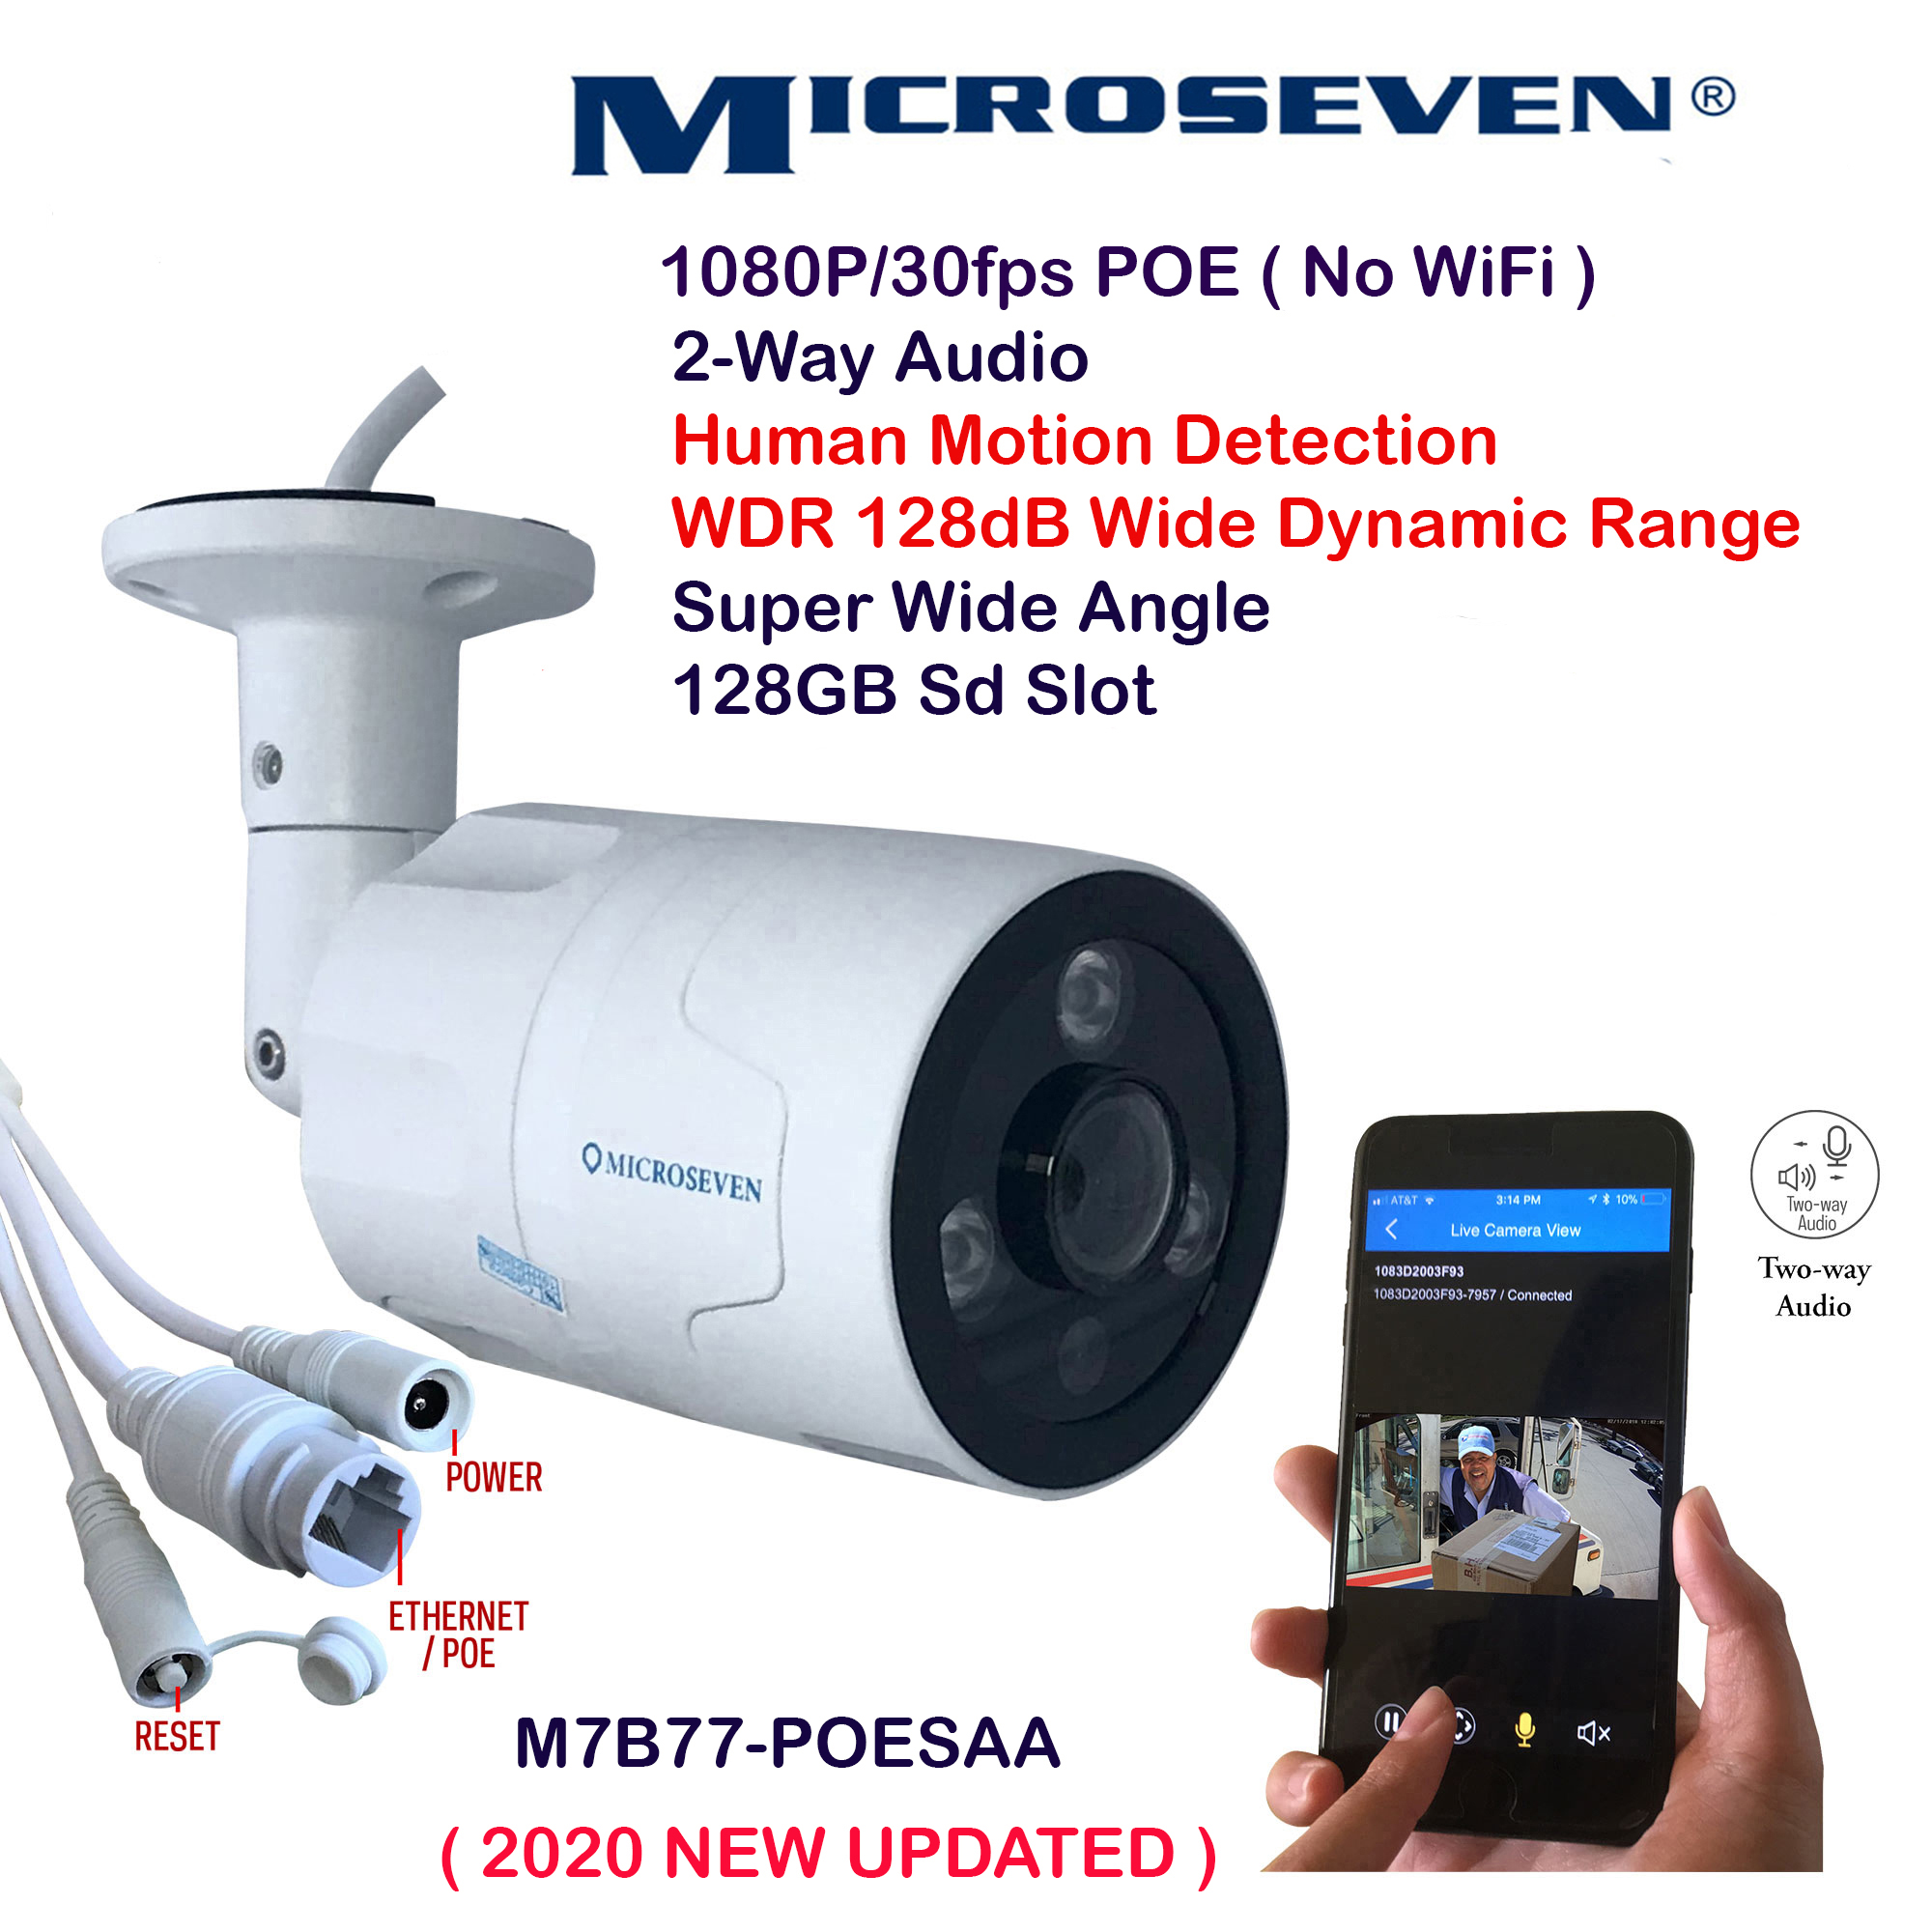 Microseven (2020 Updated ) Open Source 1080P / 30fps Sony Chipset CMOS 5MP lens ProHD POE Outdoor Camera, Amazon Certified Works with Alexa, Two-Way Audio Wide Angle (170°) POE Camera, WDR (120dB Wide Dynamic Range), Human Motion Detection POE IP Camera, 128GB SD Slot, Night Vision Bullet POE Camera, Waterproof Security Camera, ONVIF CCTV Surveillance POE Camera,Web GUI & Apps,VMS (Video Management System)